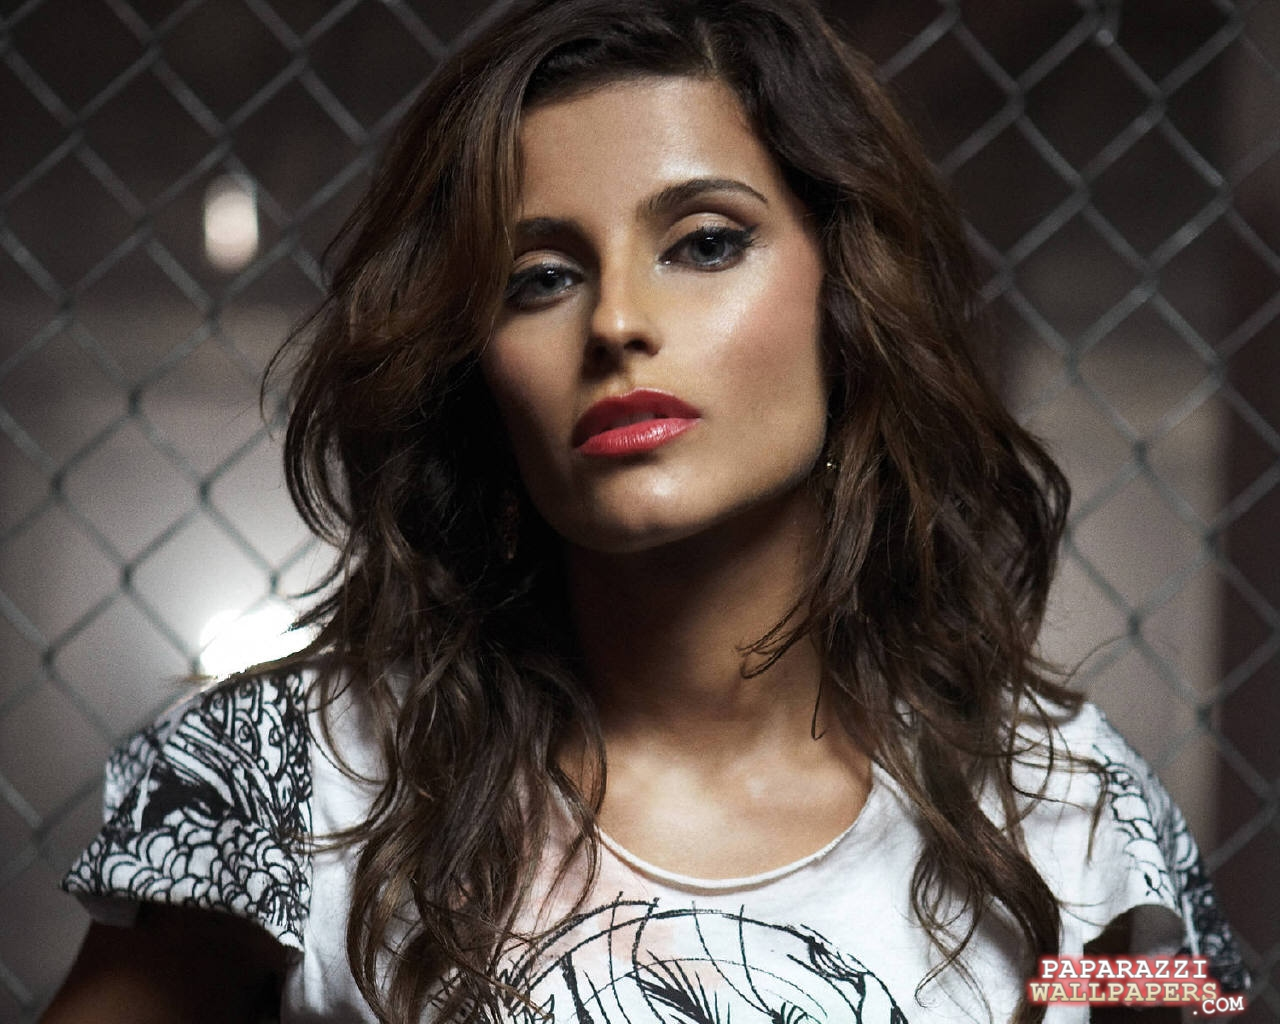 http://www.paparazziwallpapers.com/data/media/19/nelly_furtado_wallpapers_016.jpg